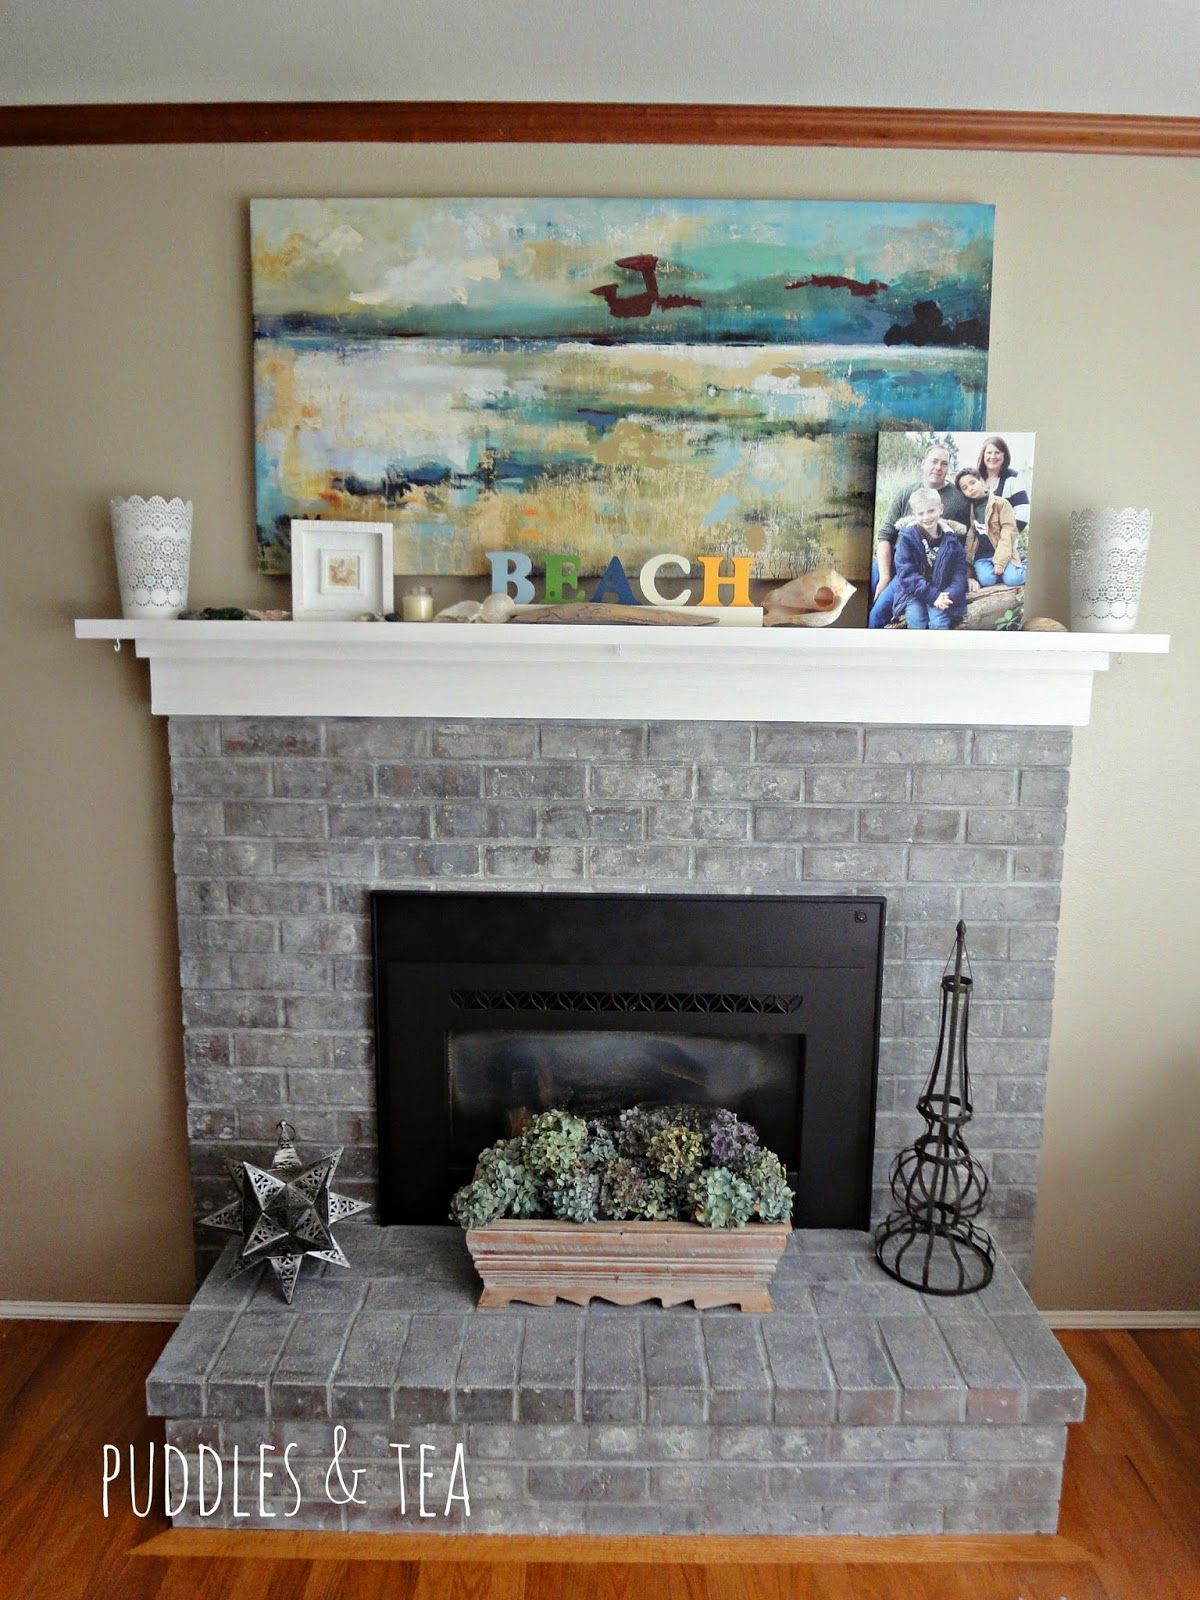 Refacing Brick Fireplace Inspirational Puddles & Tea White Wash Brick Fireplace Makeover